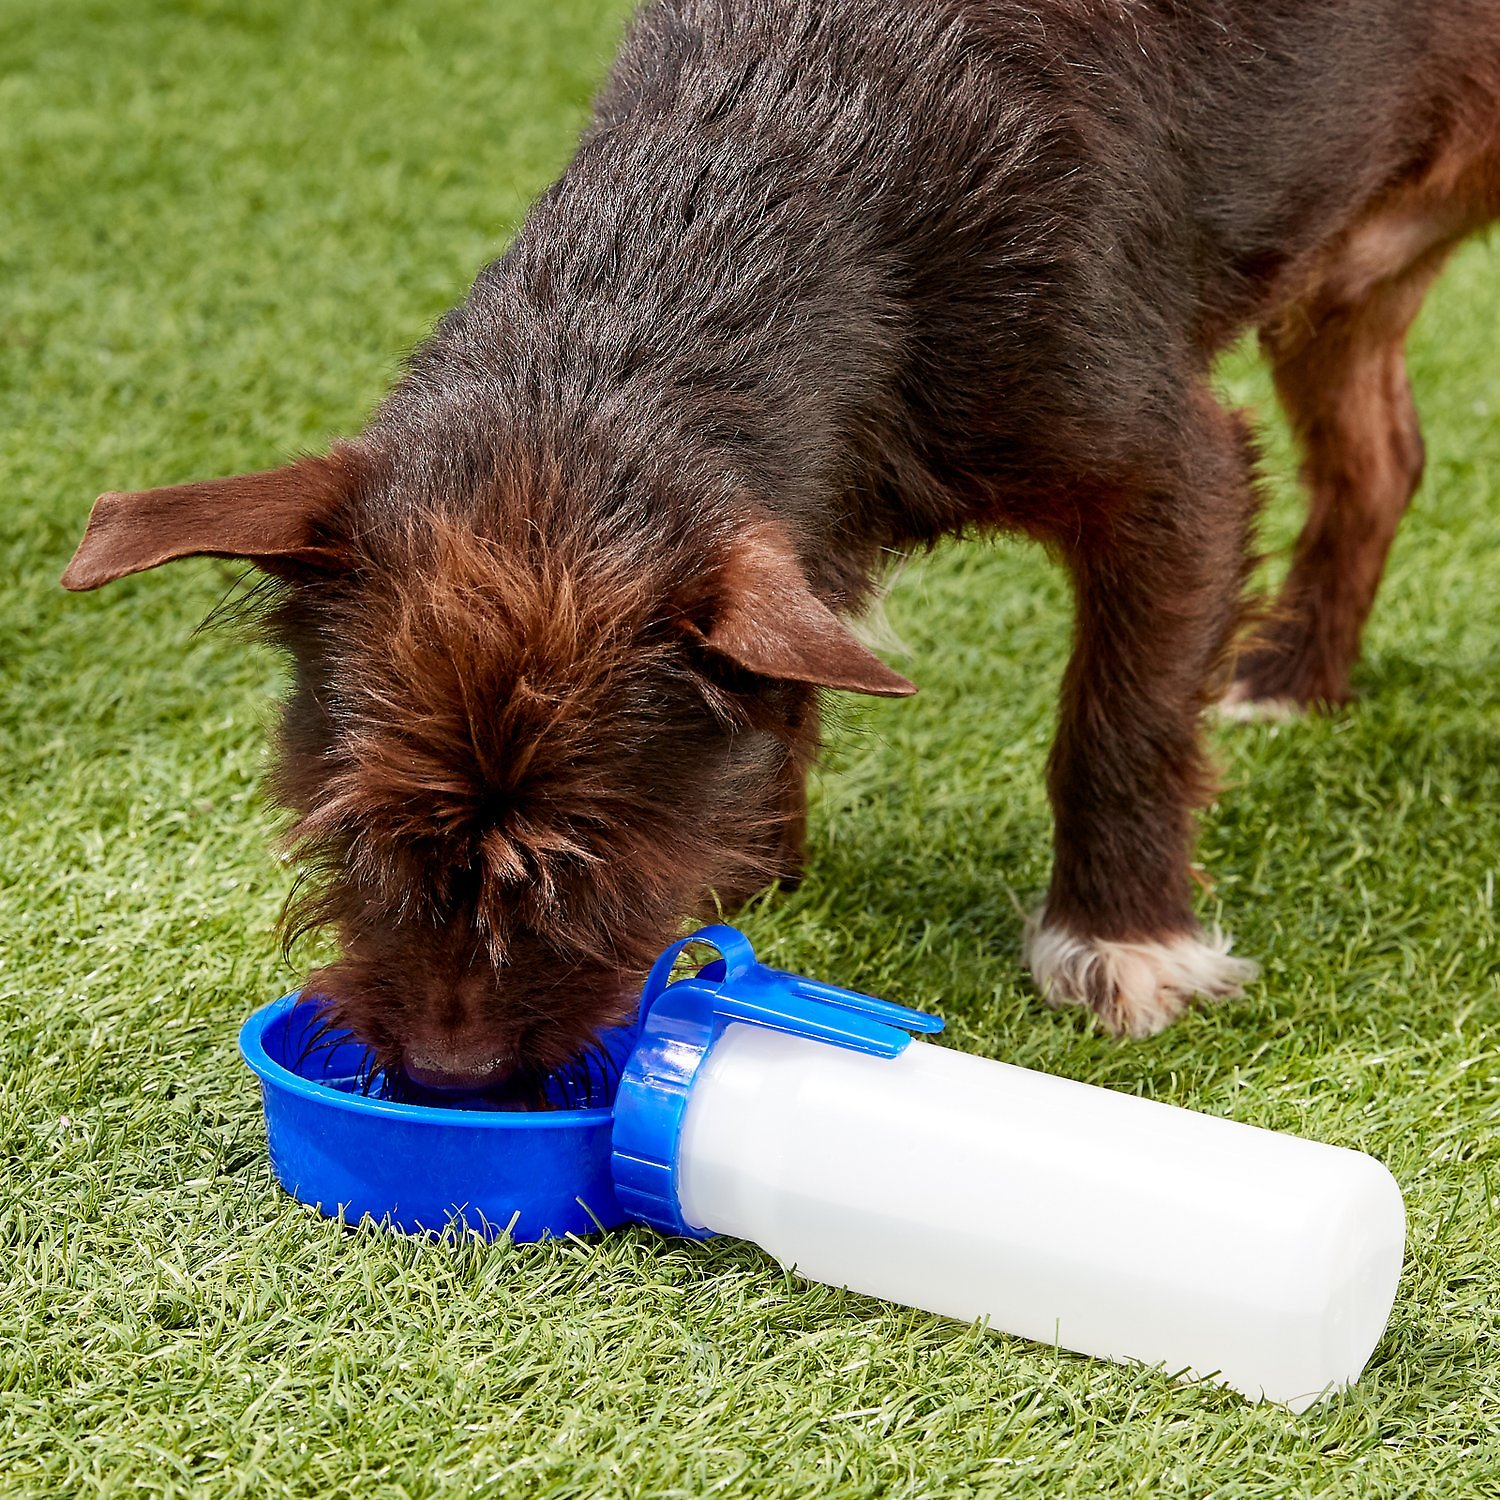 Portable Dog Water Bottle >> Water Rover Portable Dog & Cat Water Bottle & Bowl, Dark Blue, Medium - Chewy.com